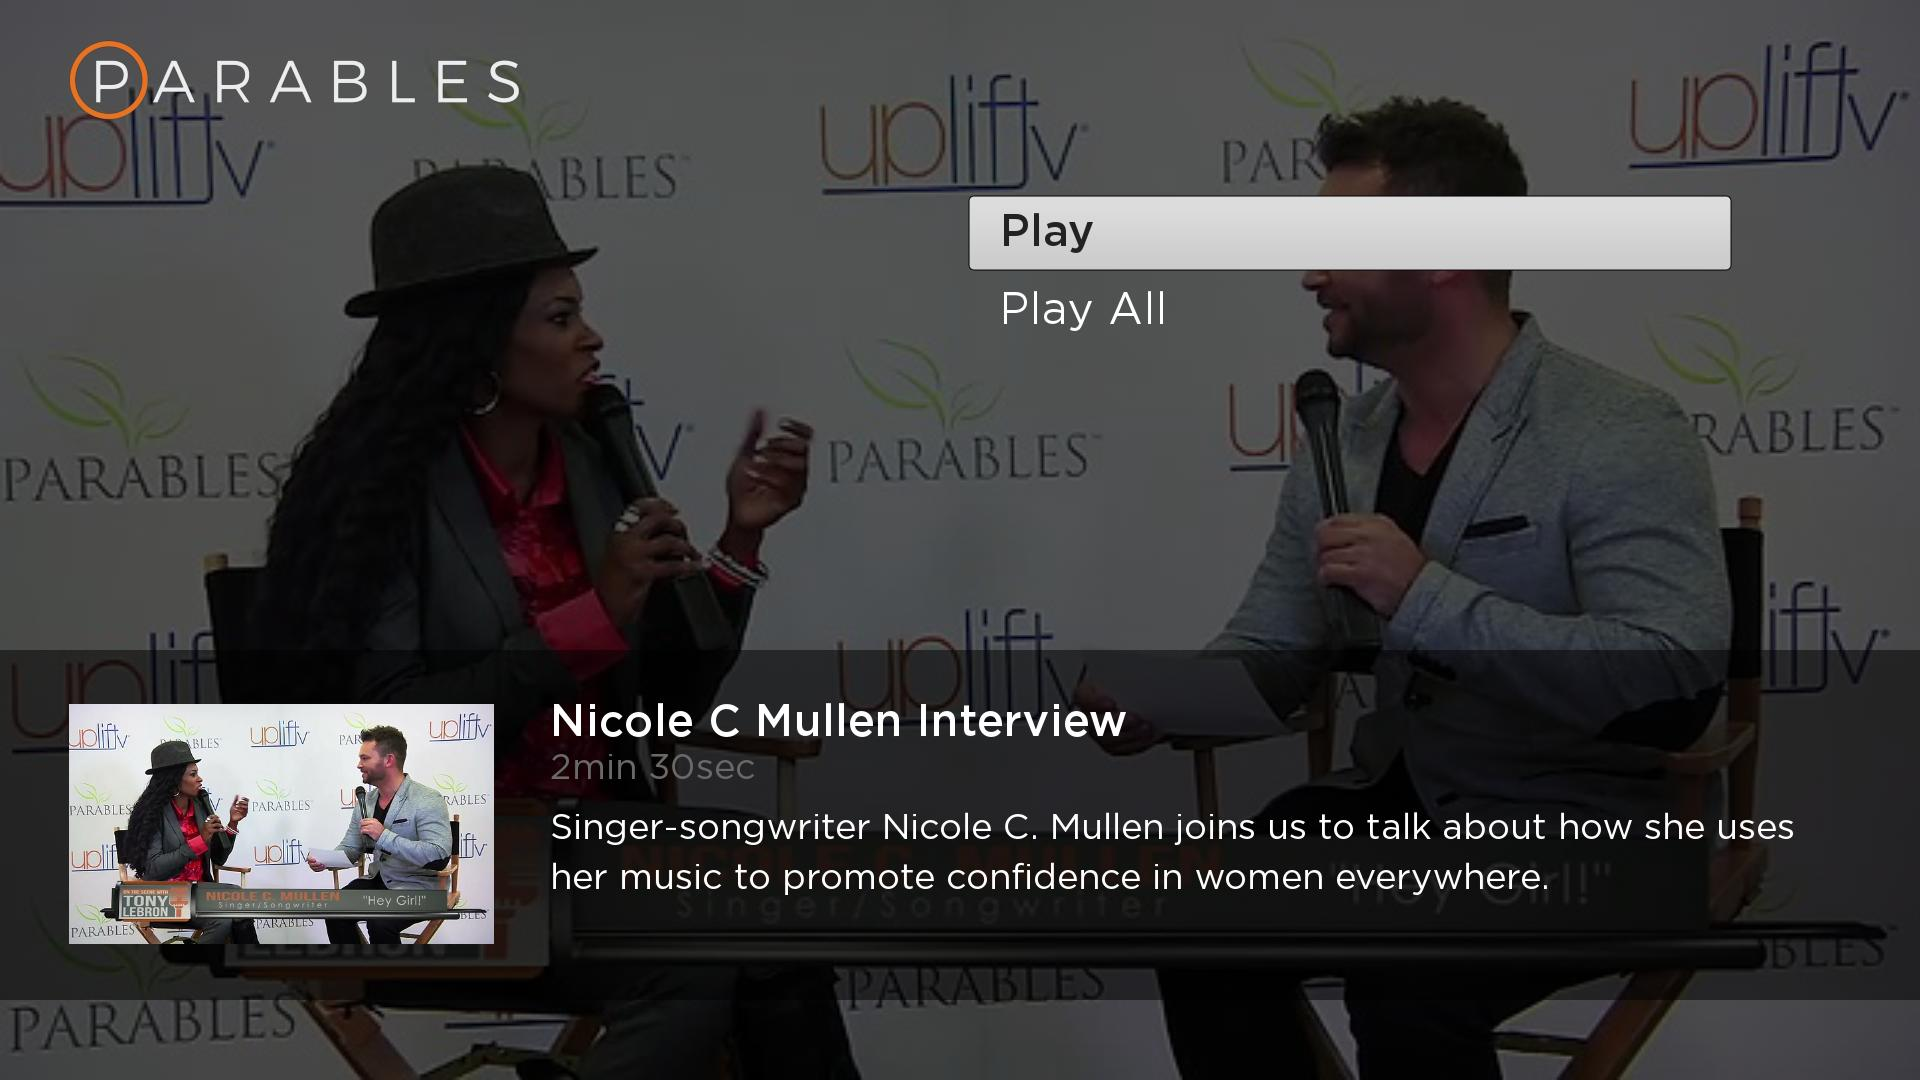 Upliftv Screenshot 003